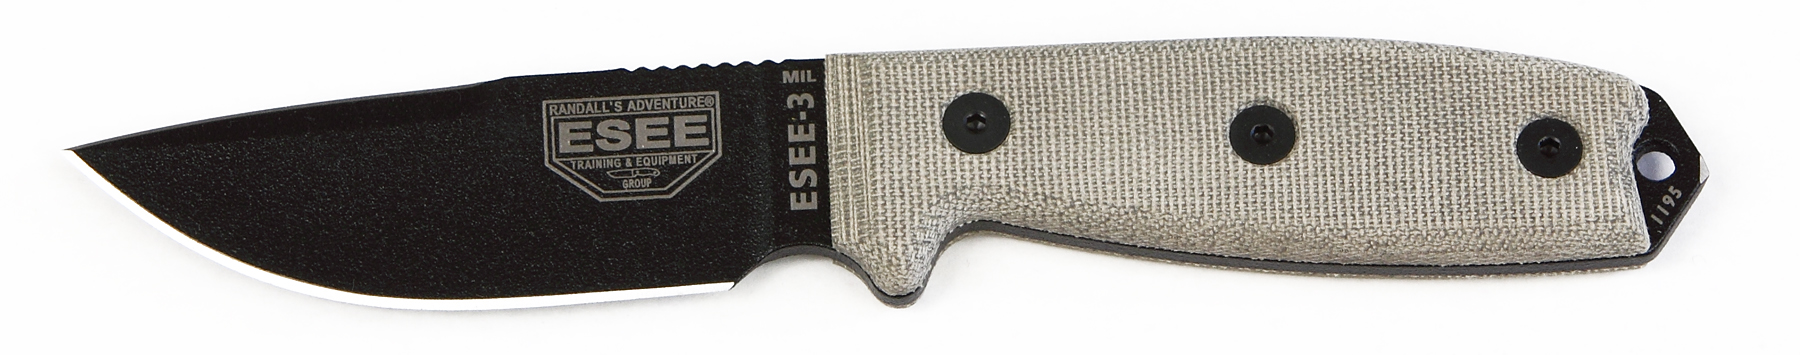 ESEE-3MIL-P-CP - ESEE-3P-CP w/ Glass Breaker Pommel, OD Sheath w/ MOLLE Back